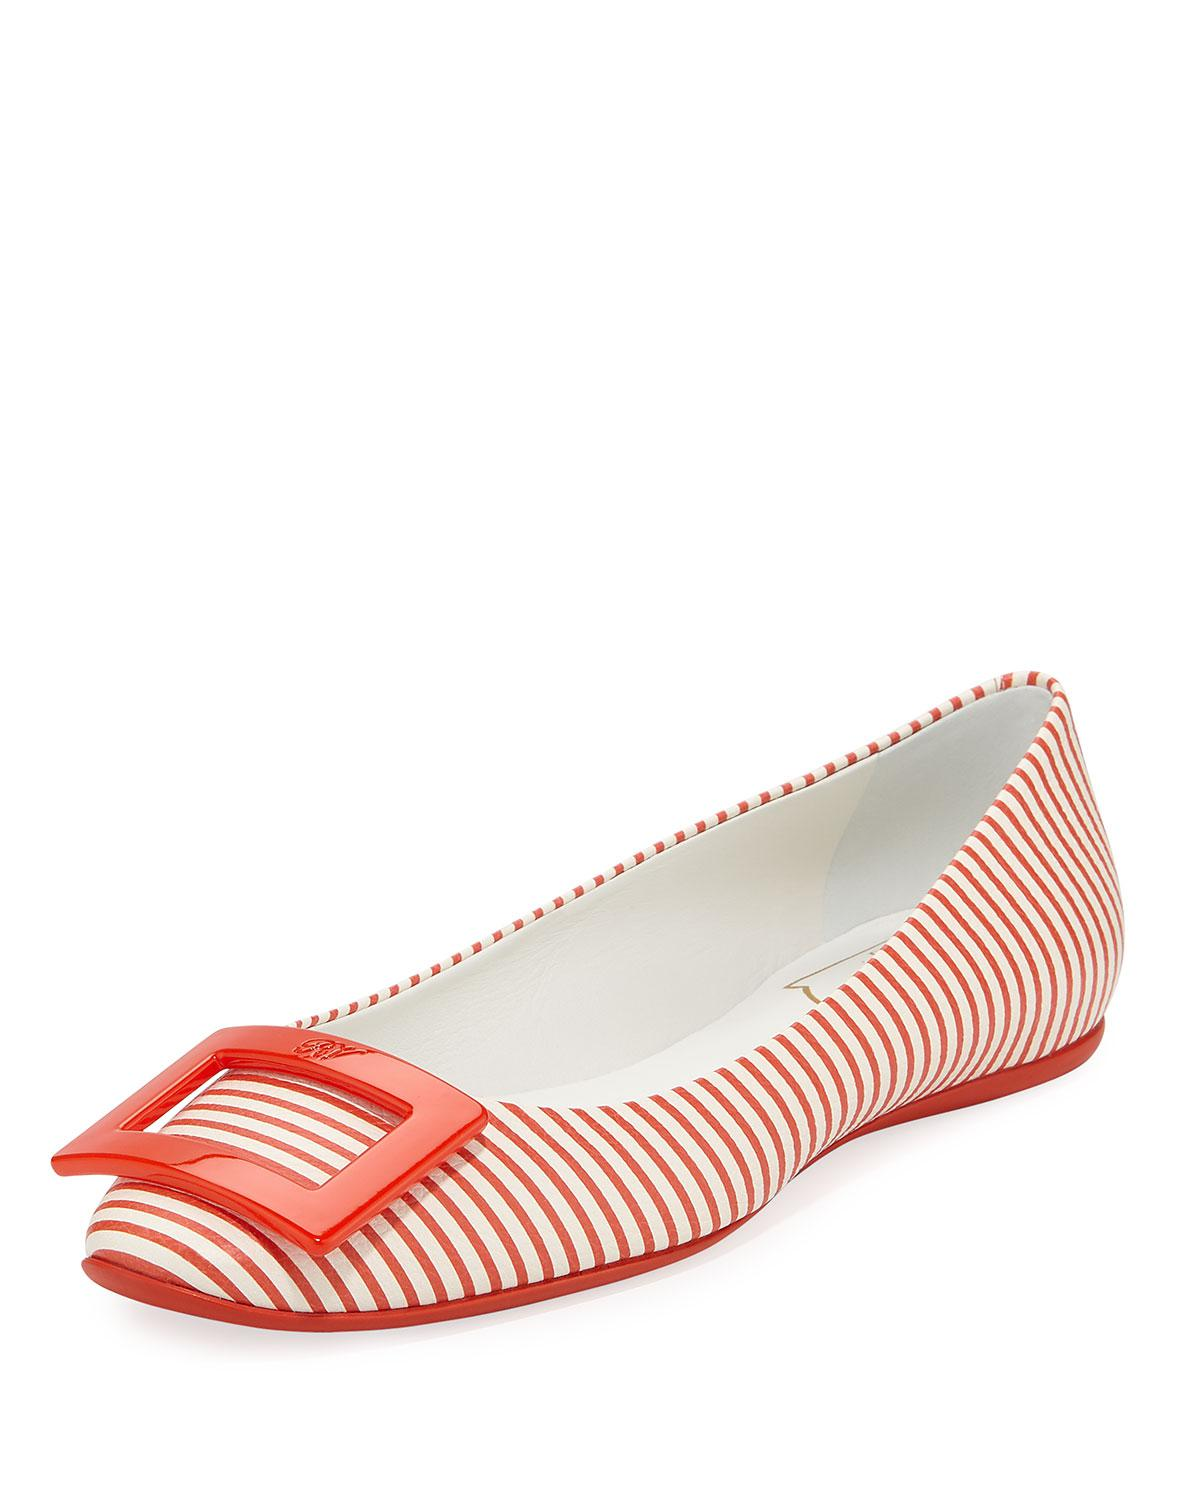 Free Shipping 100% Authentic Roger Vivier Cloth Ballet Flats Buy Cheap Limited Edition Sale Really v8iLNDRZ